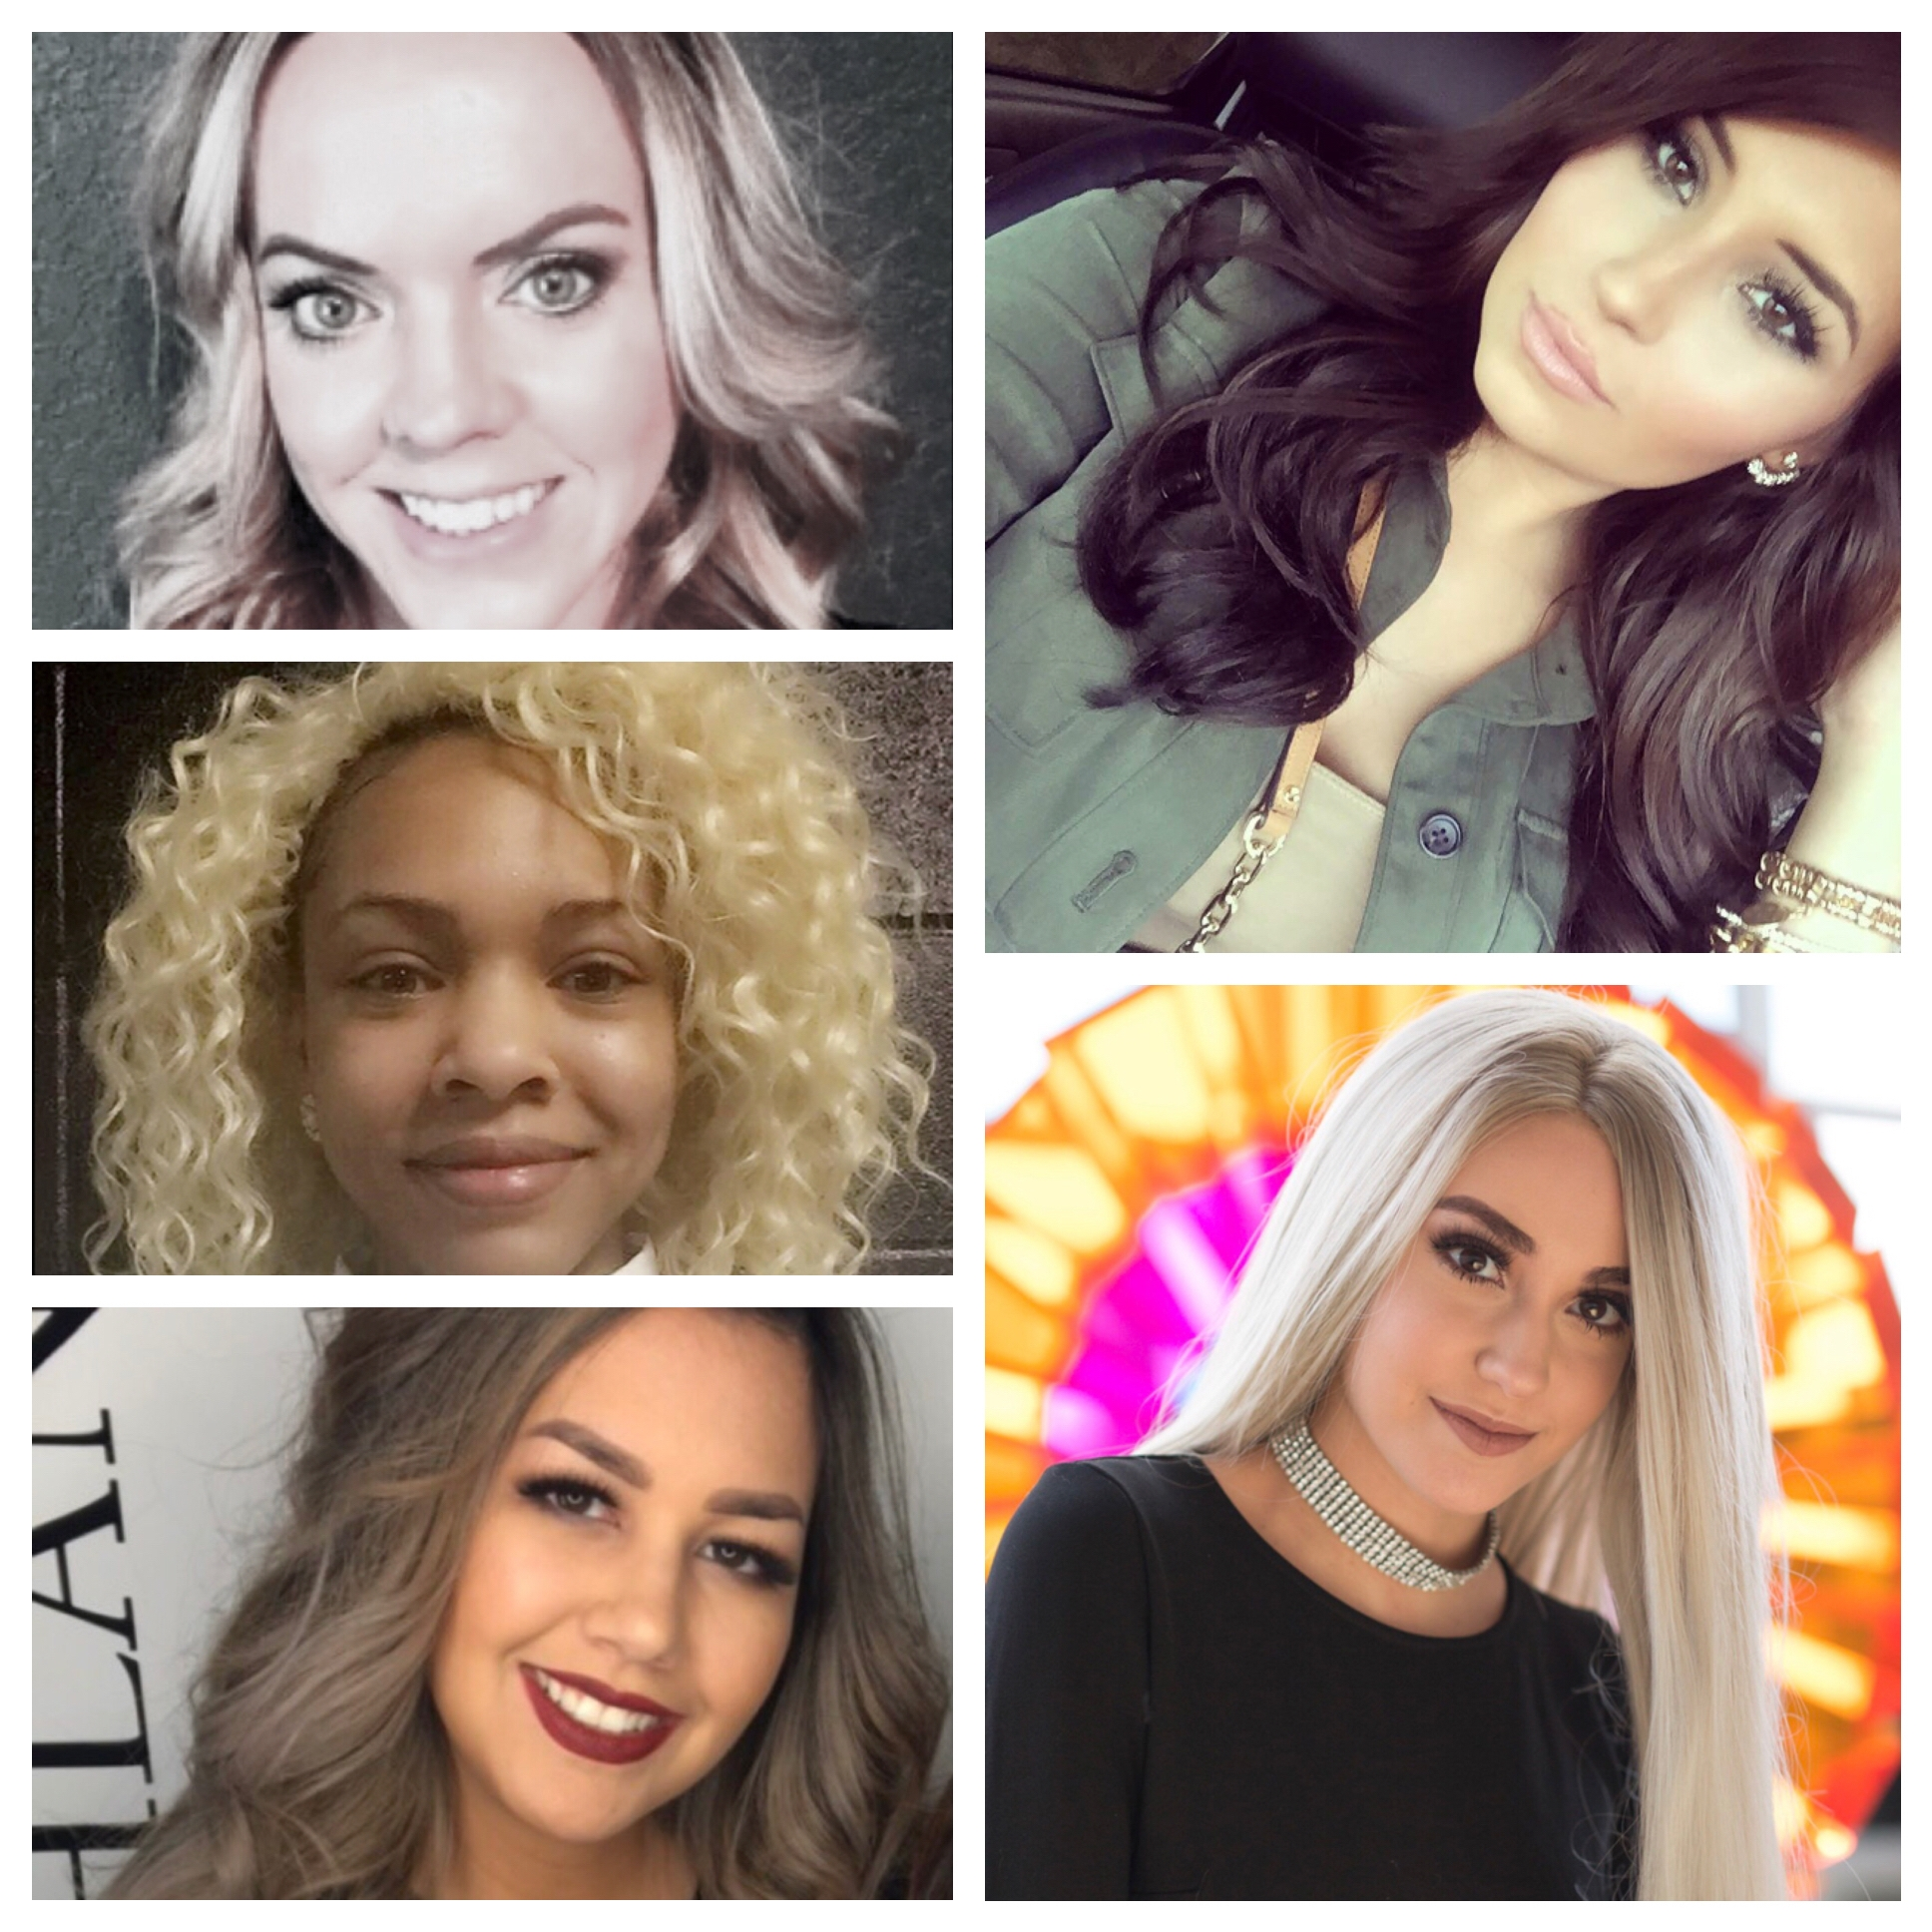 Clockwise from top left: Melissa Pavel, Taylor Watts, Rachel Daloise, Alexandra Aaron and Rician Walker are scholarships winners with Rosy Rewards.